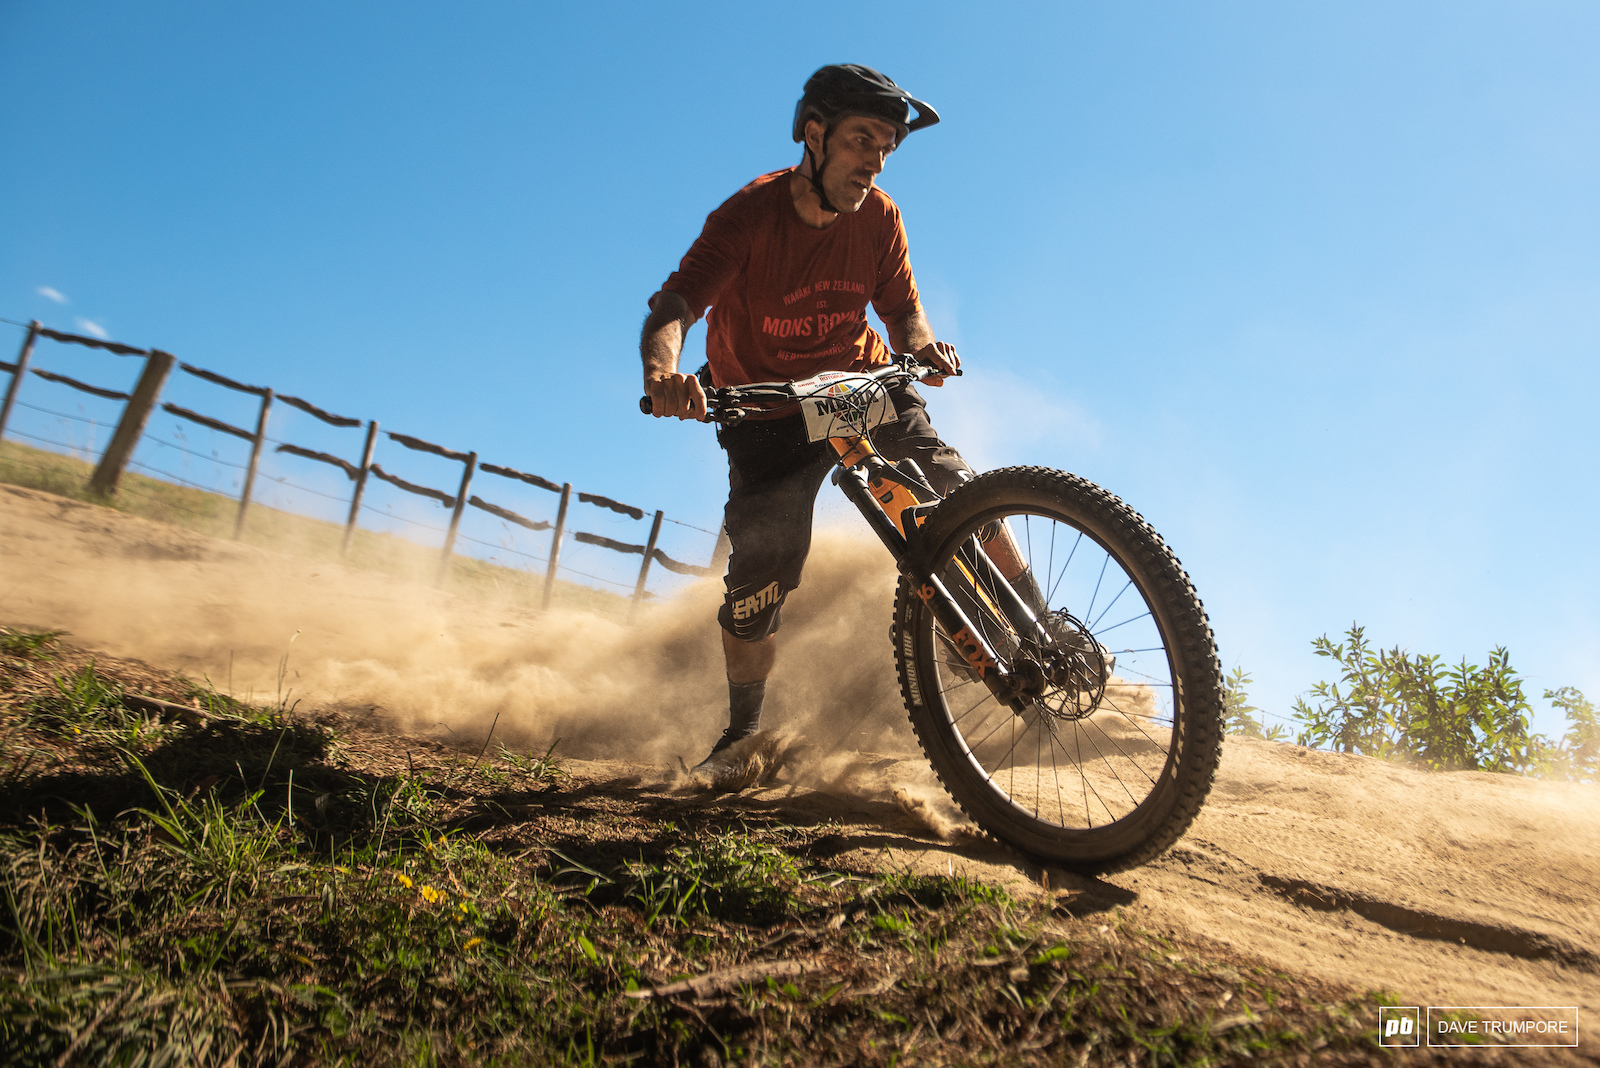 Salva Moreno knows sideways in the dry is more fun than sideways in the wet.